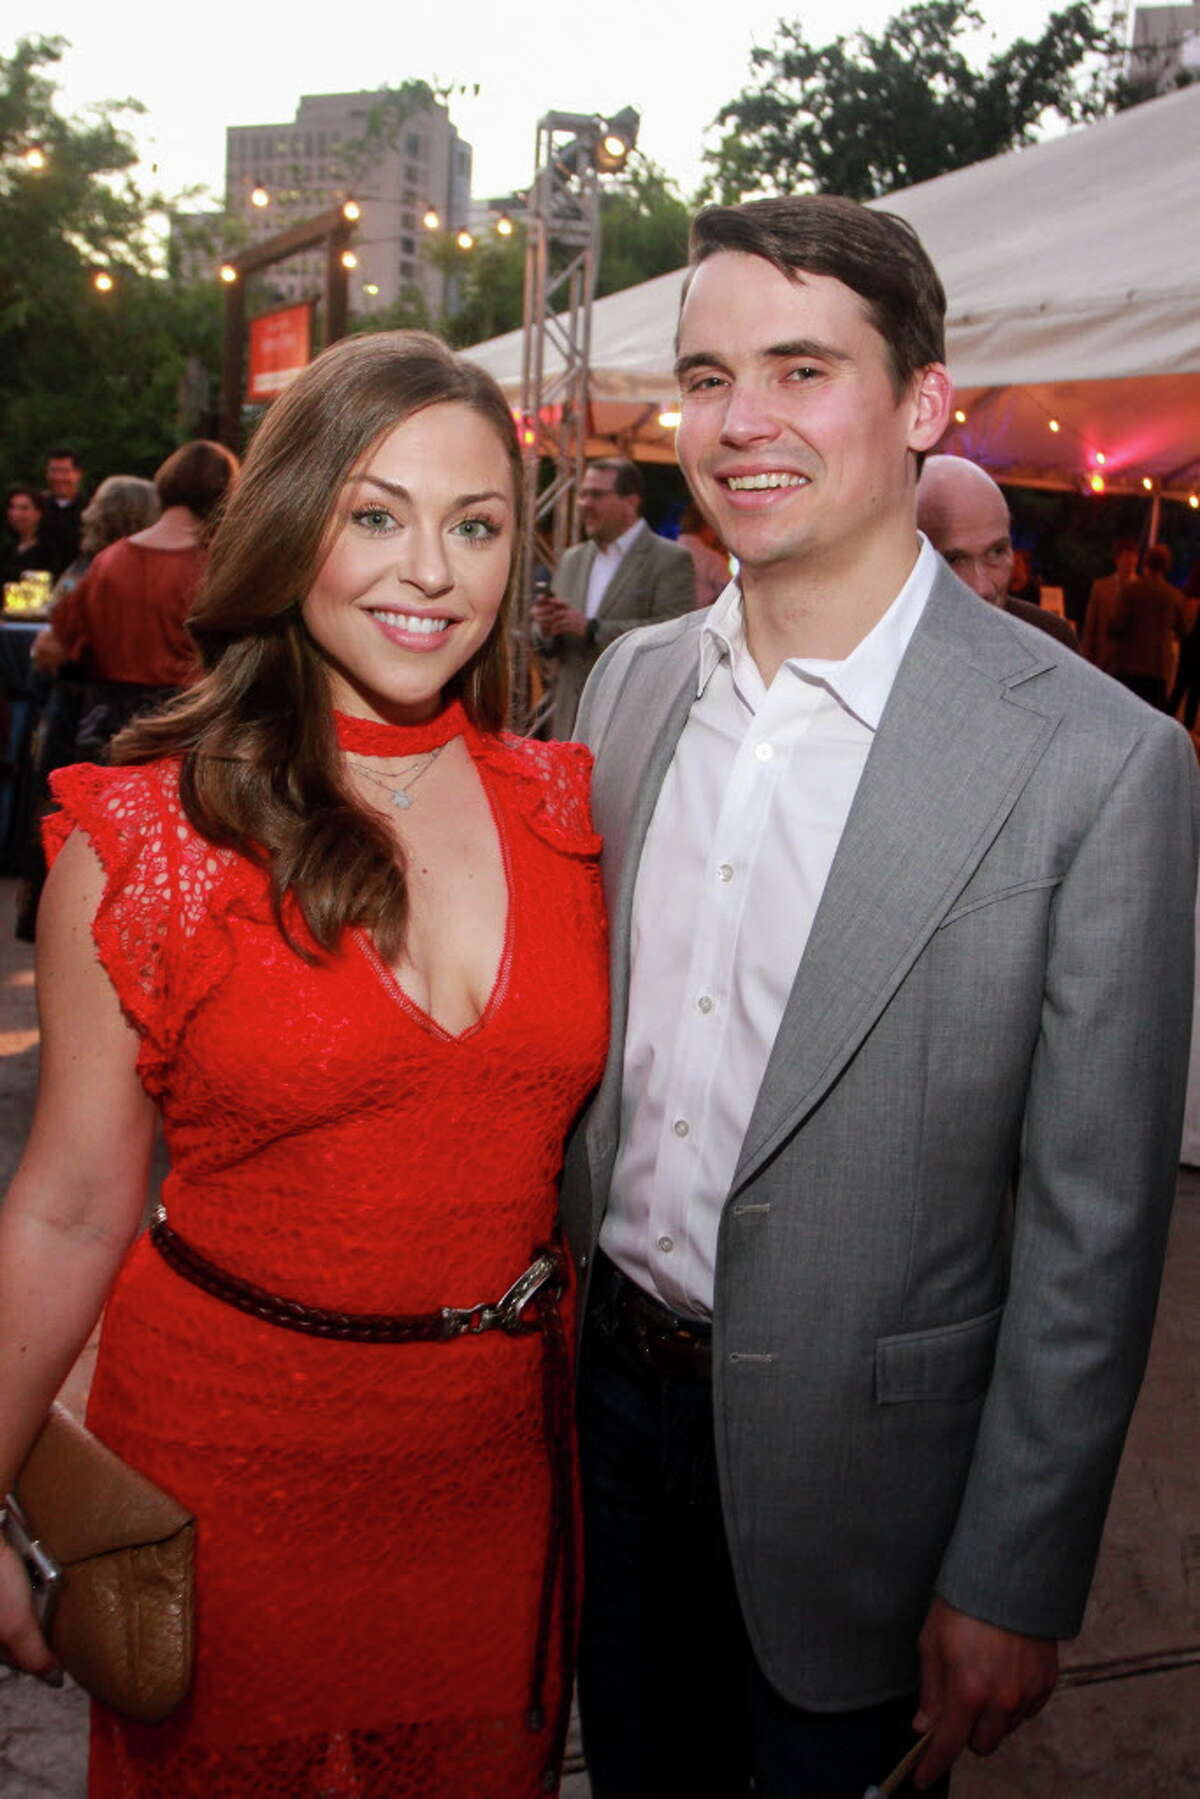 Lexi Sakowitz and Mike Marek at the Houston Zoo Conservation Gala.